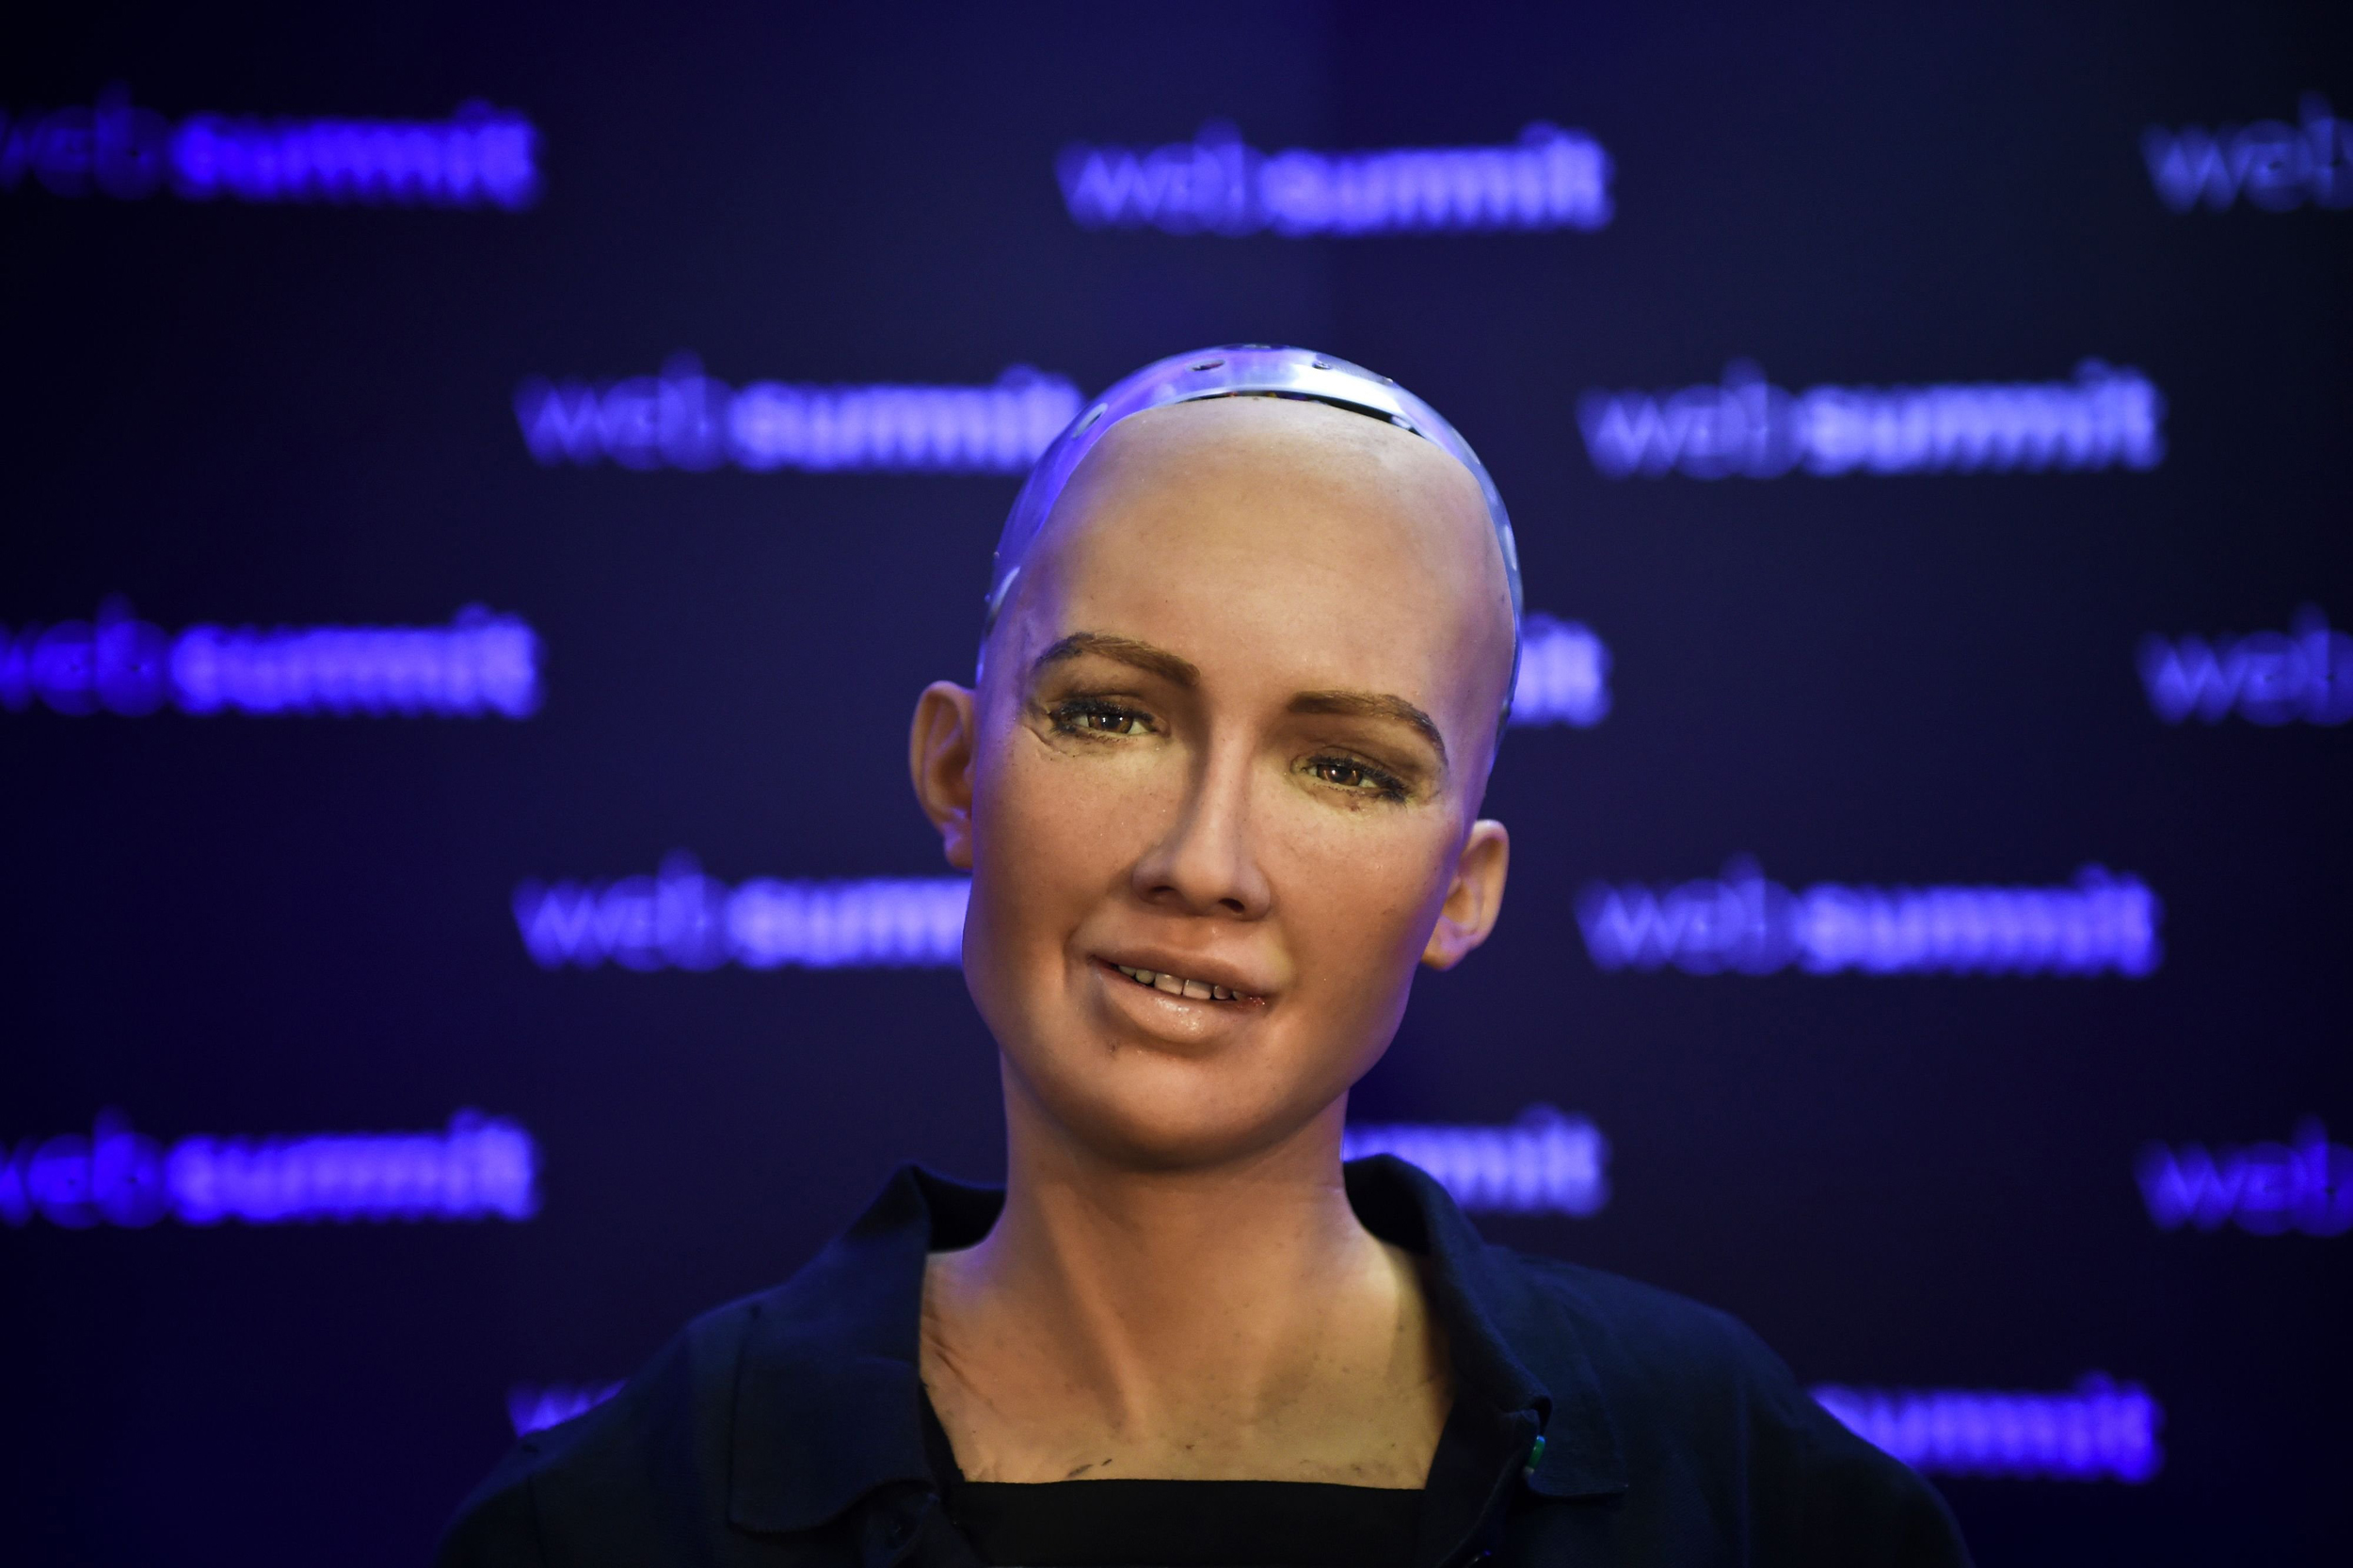 Image: PORTUGAL-TECHNOLOGY-WEBSUMMIT